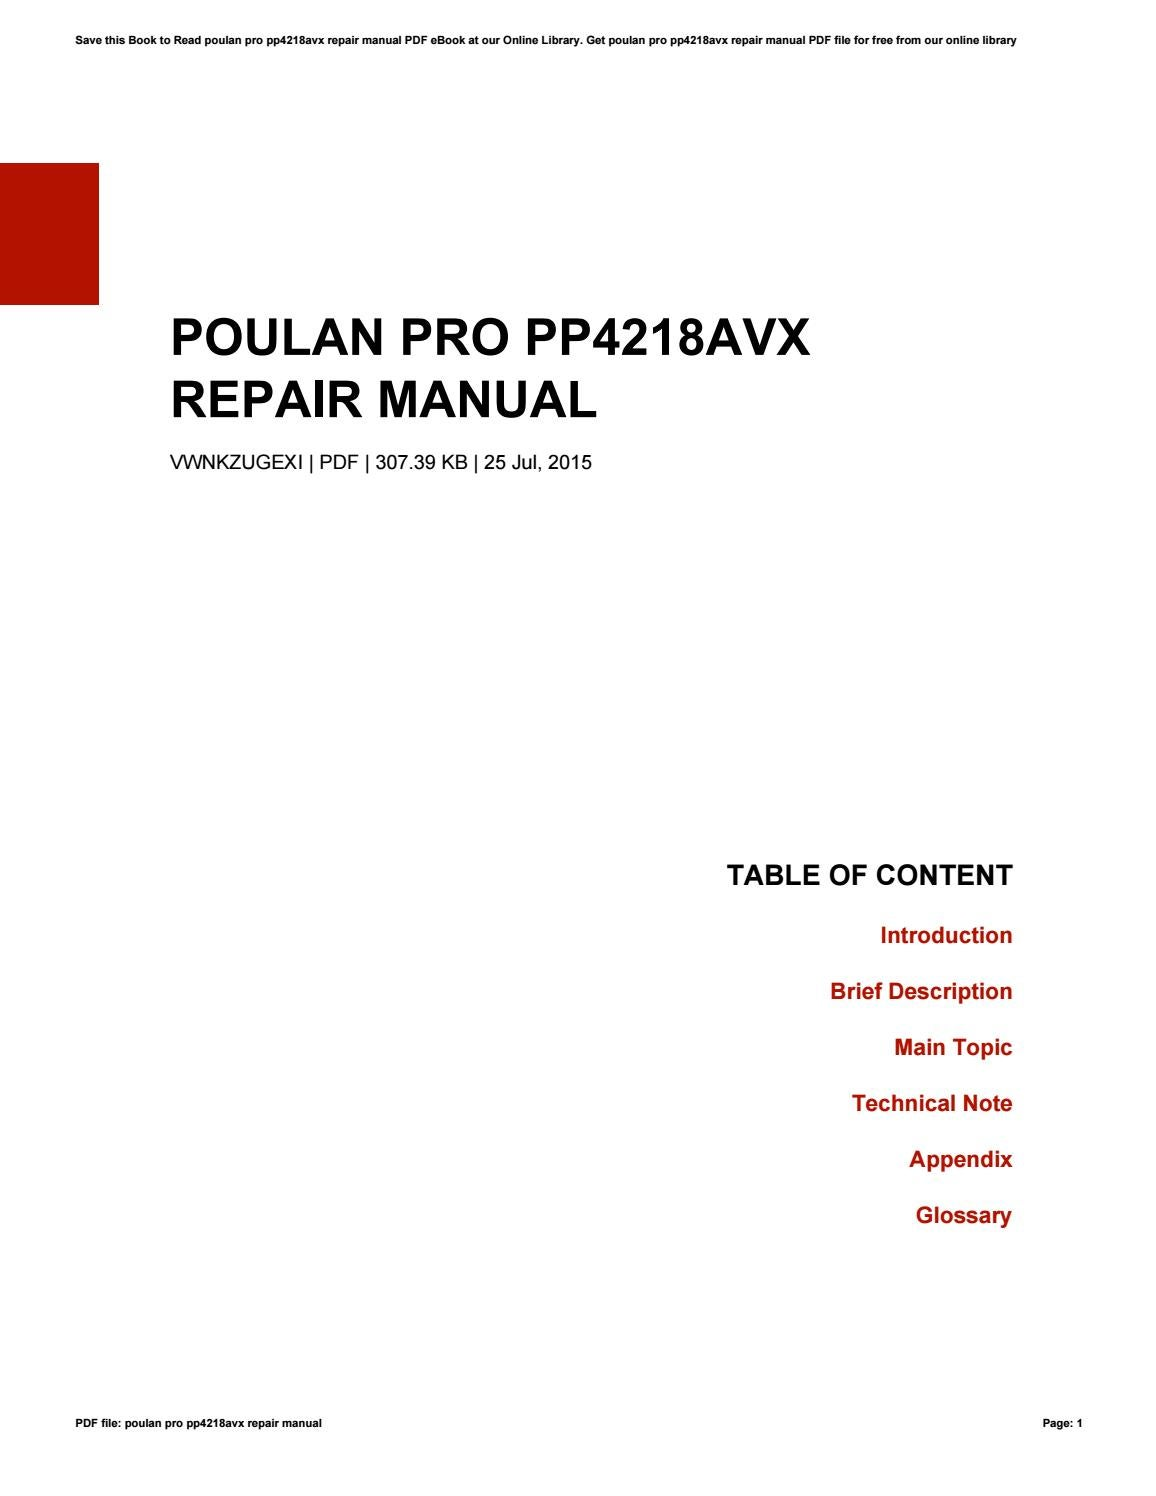 Poulan pro pp4218avx repair manual by TimothyEversole2658